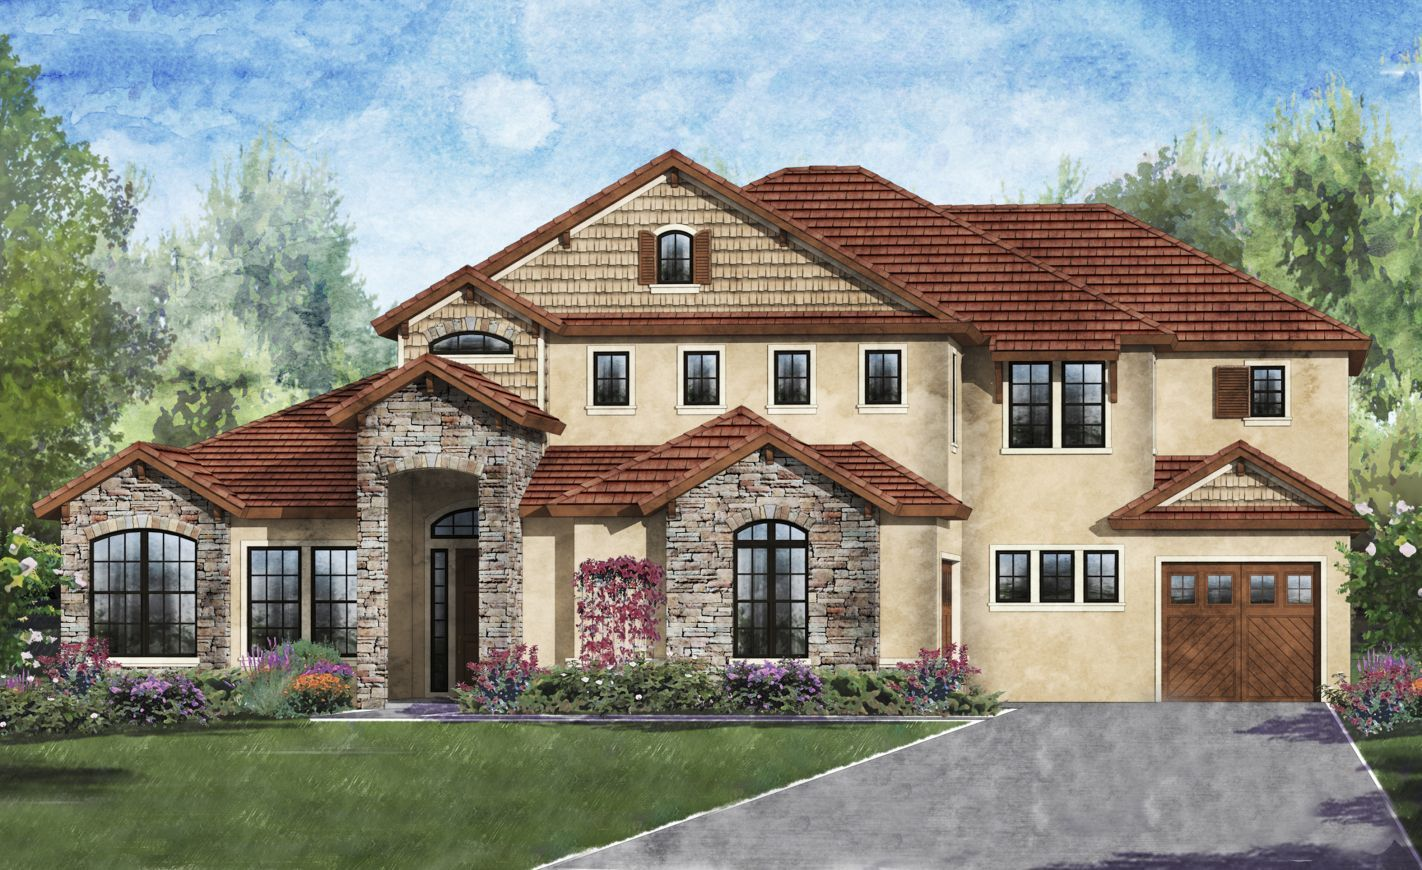 west creek buddhist singles Our townhomes in san antonio feature amenities to complement your lifestyle from a spacious yard to conveniences such as a washer & dryer you will love calling townhomes at west creek your home.